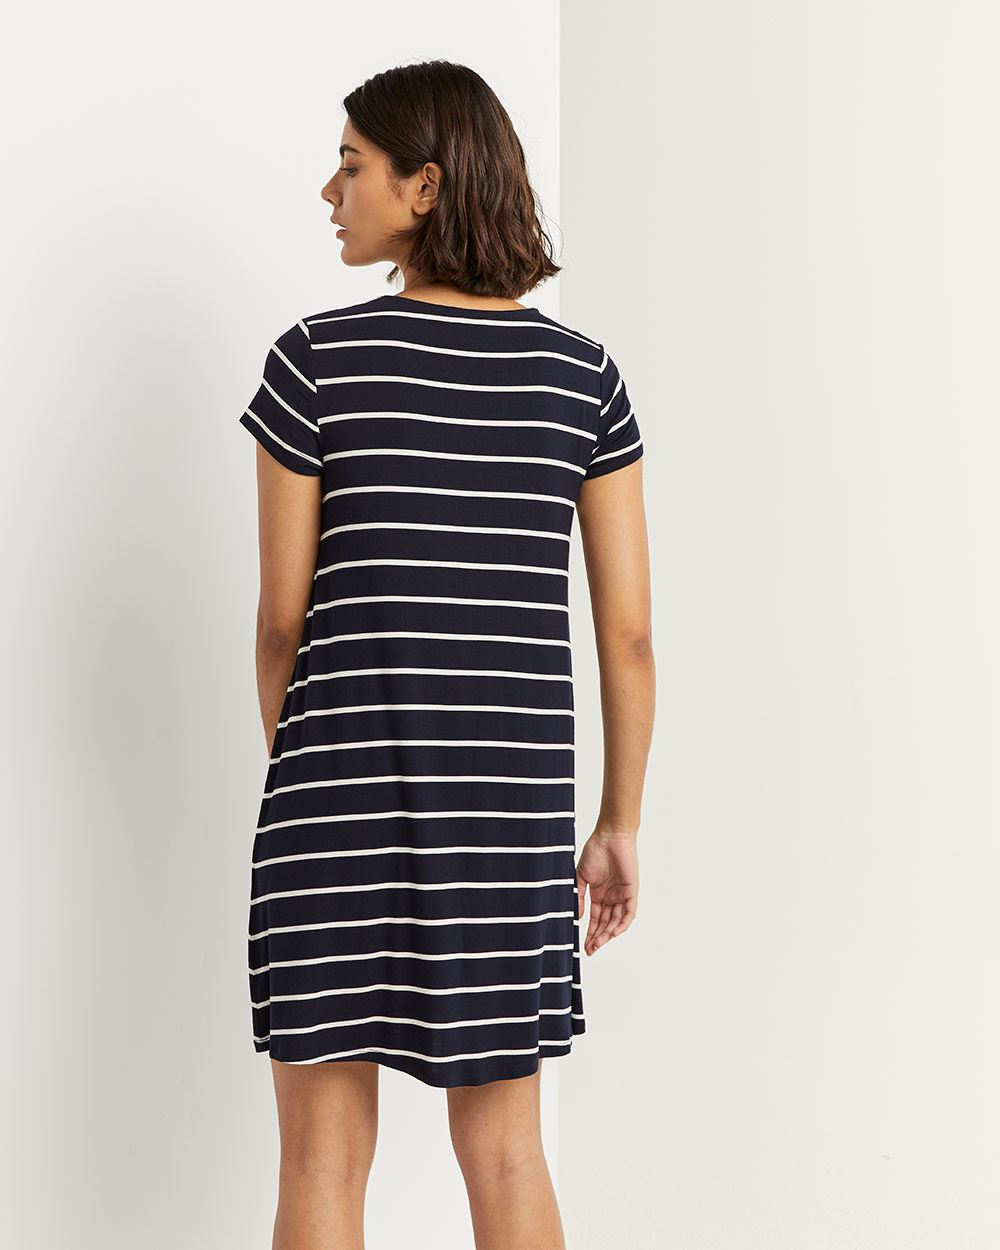 Short Sleeve Striped Swing Dress with Buttons